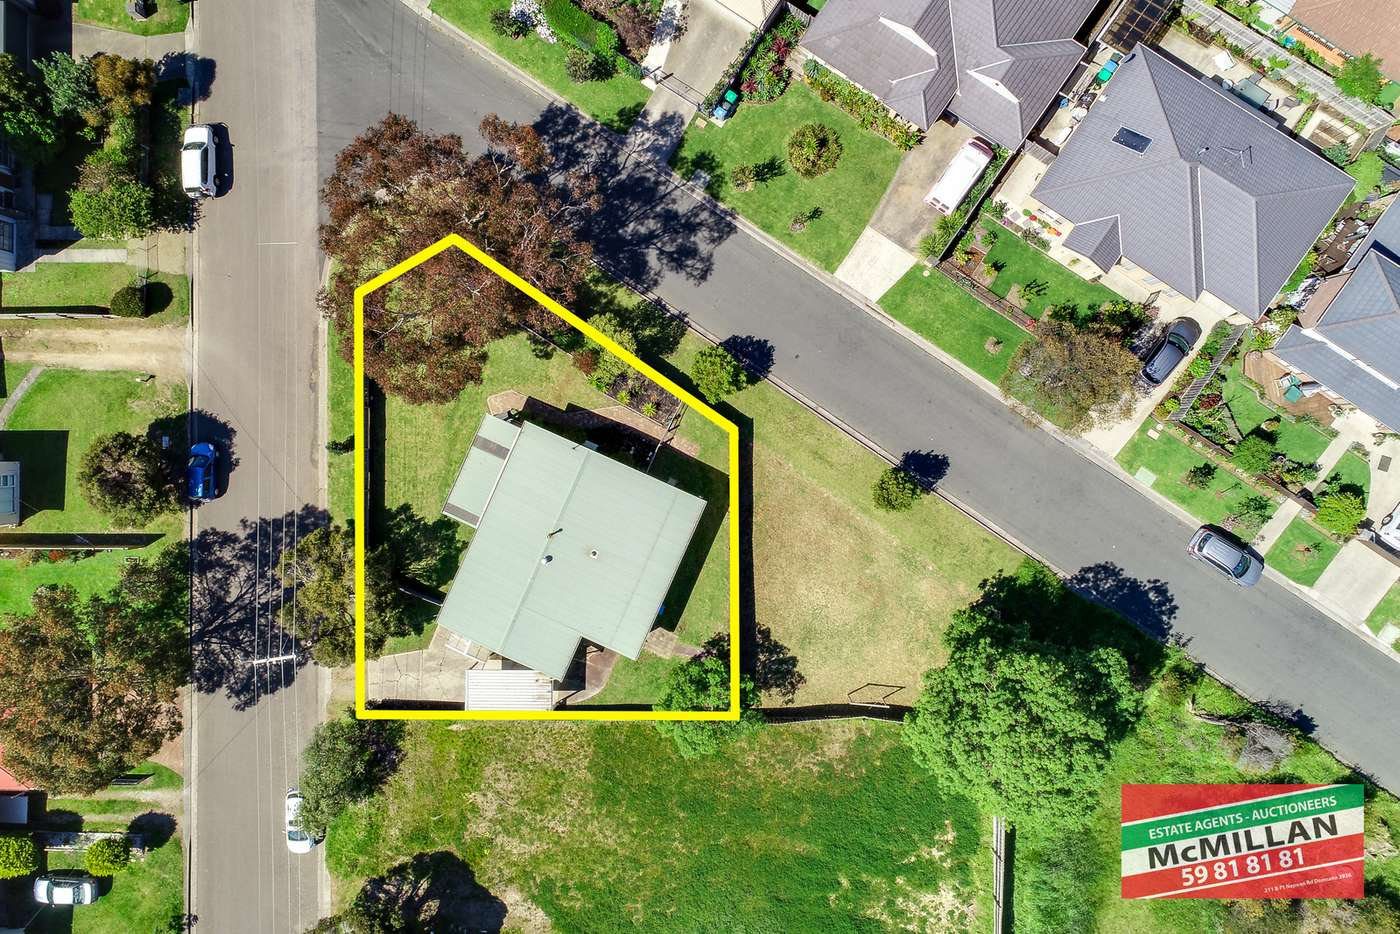 Main view of Homely house listing, 2-4 Clematis Street, Dromana VIC 3936